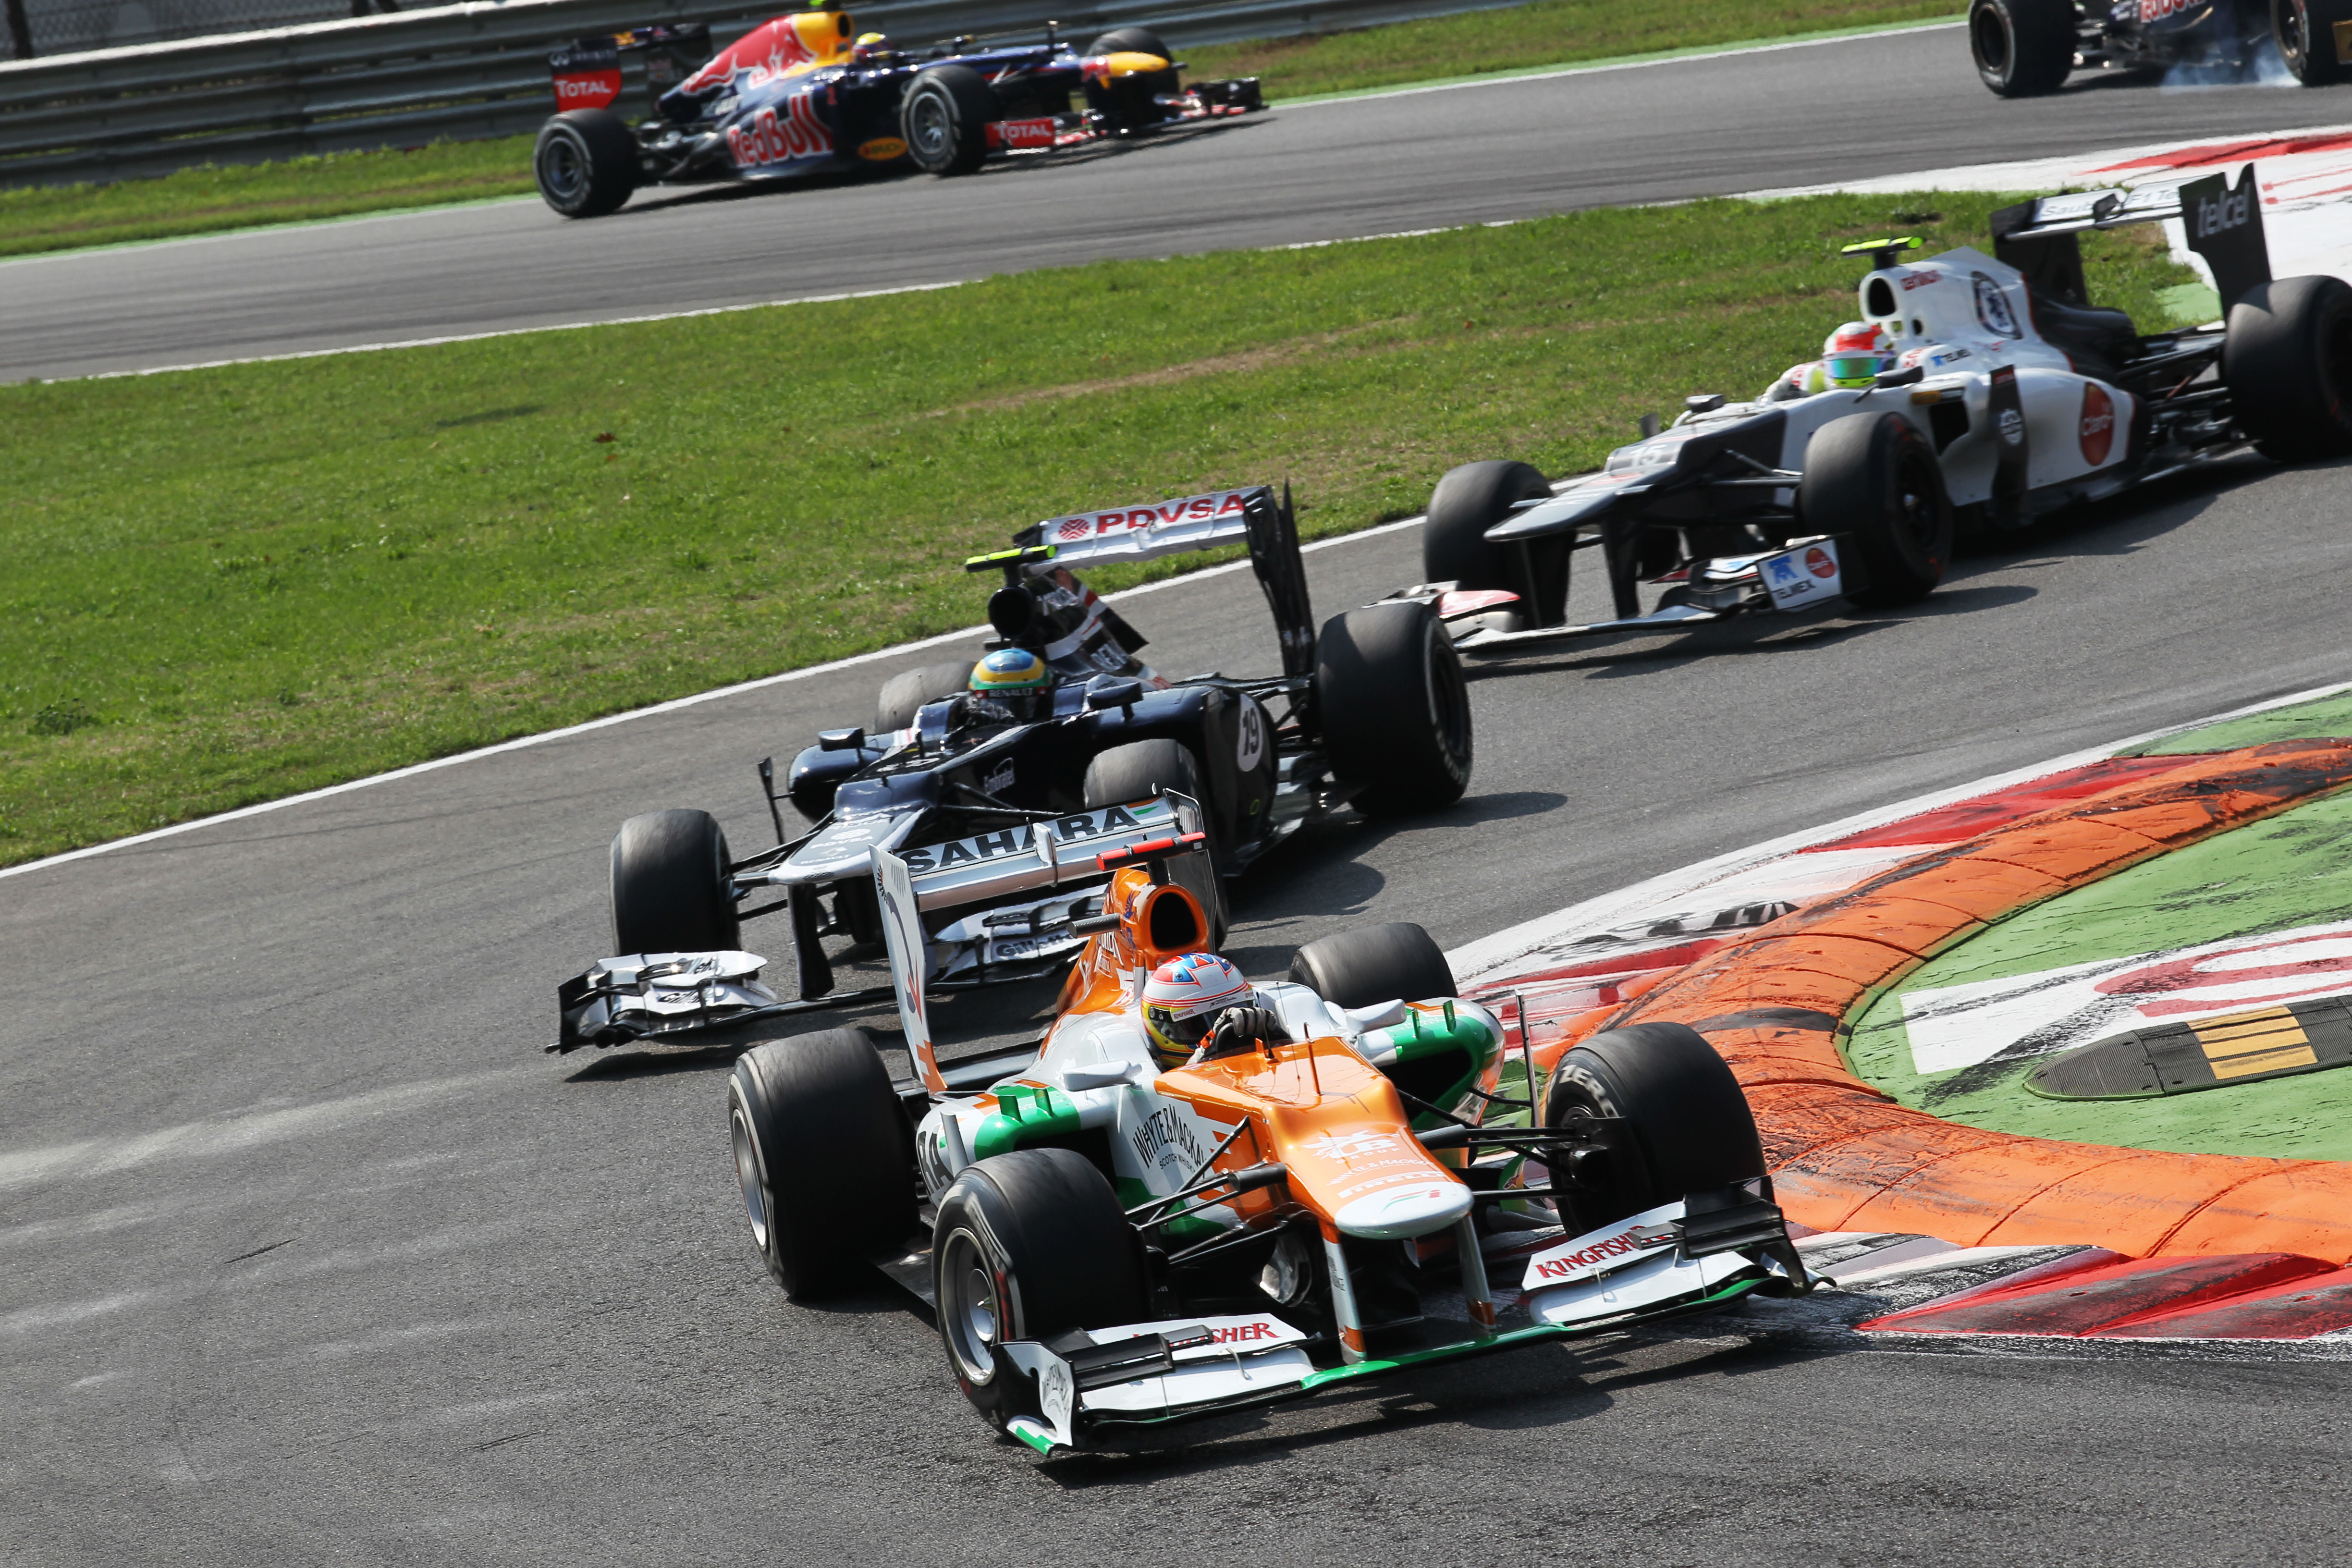 5 Reasons Why Monza Is Such An Epic F1 Circuit